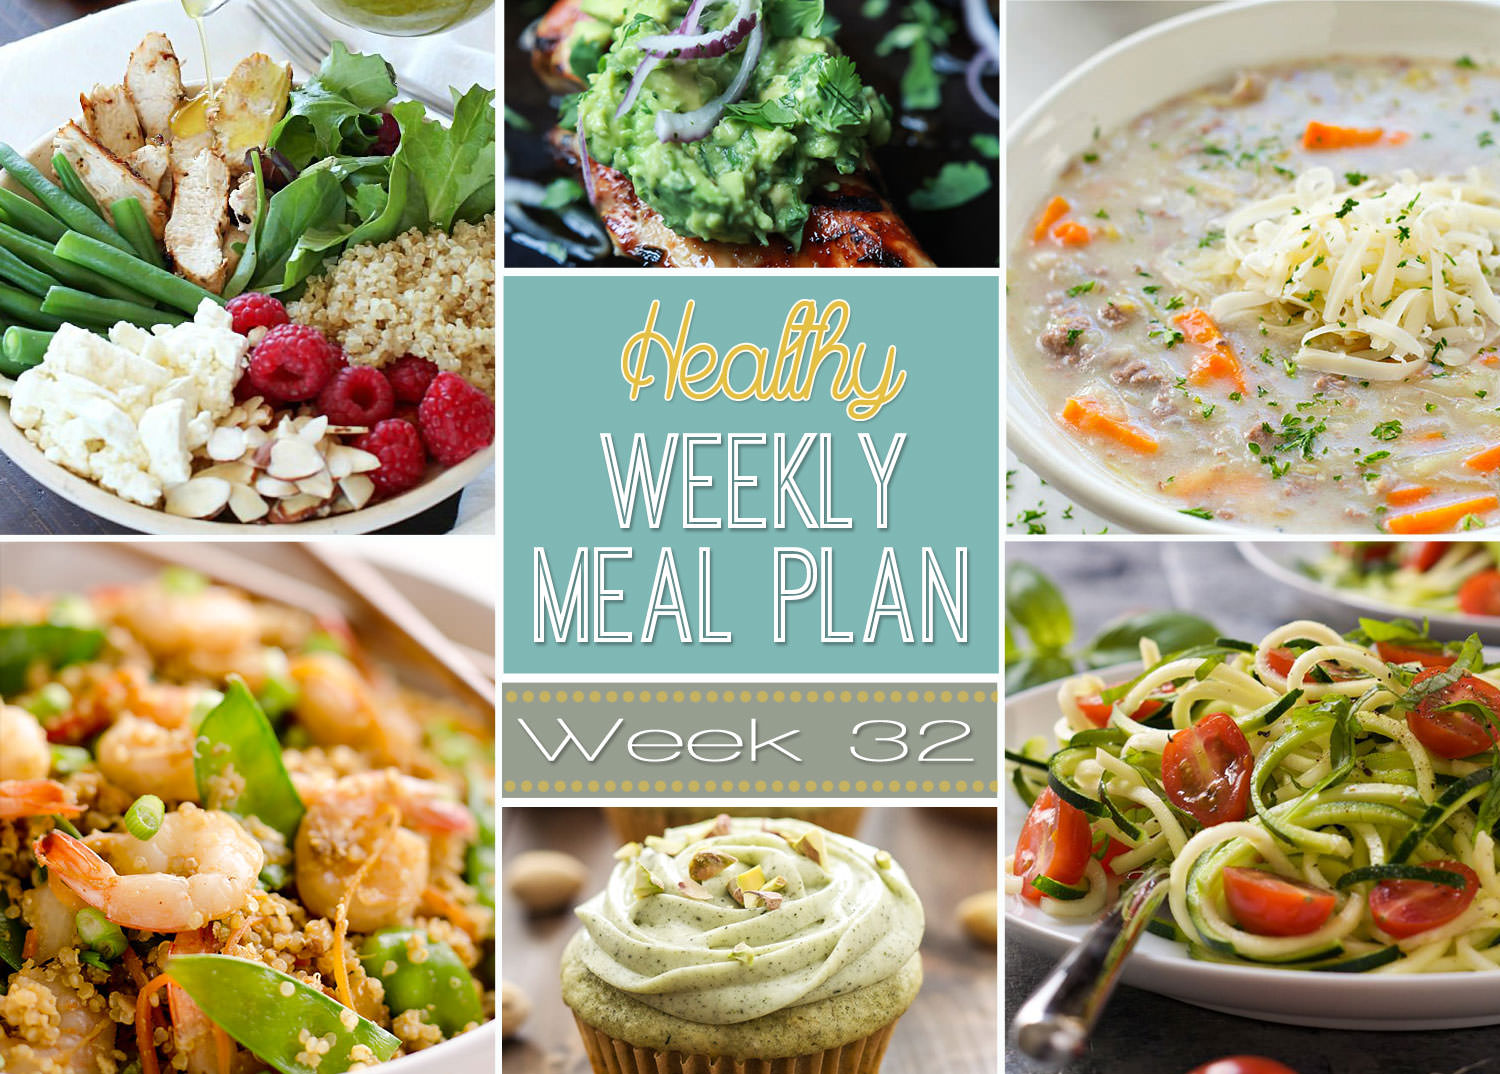 Healthy-Meal-Plan-Week-32-Horizontal